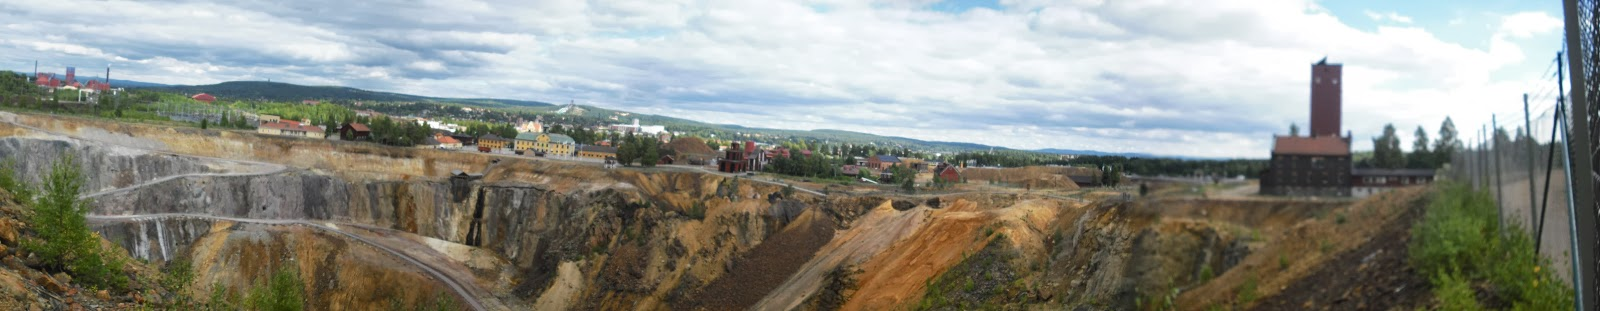 Panoramic picture taken at the Falun Mine